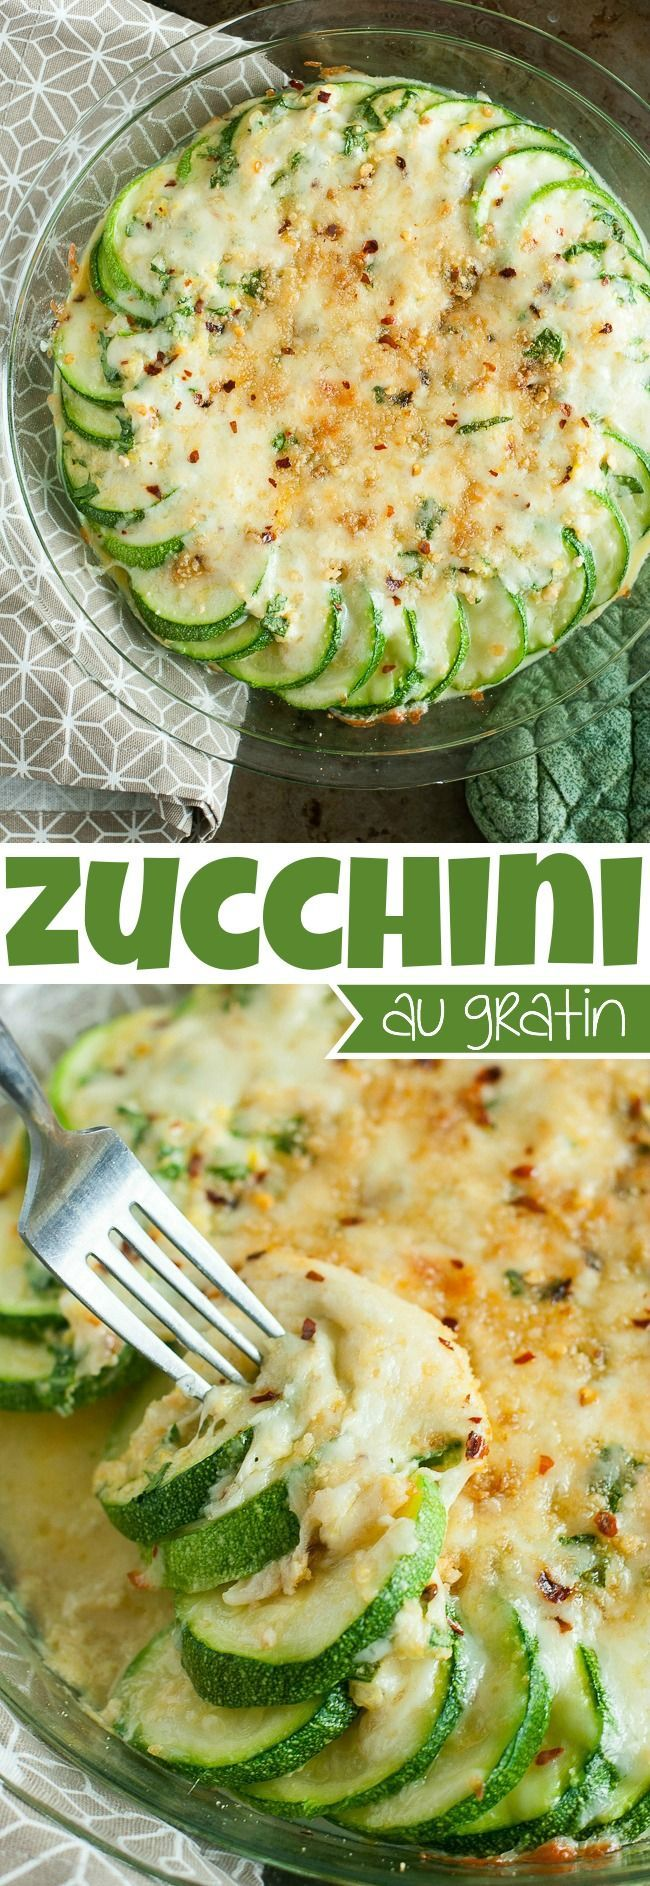 Sliced zucchini rounds are topped with freshly grated cheddar and fontina cheeses and baked to bubbly perfection in this tasty Zucchini au Gratin. This seasonal side dish is easy and cheesy!